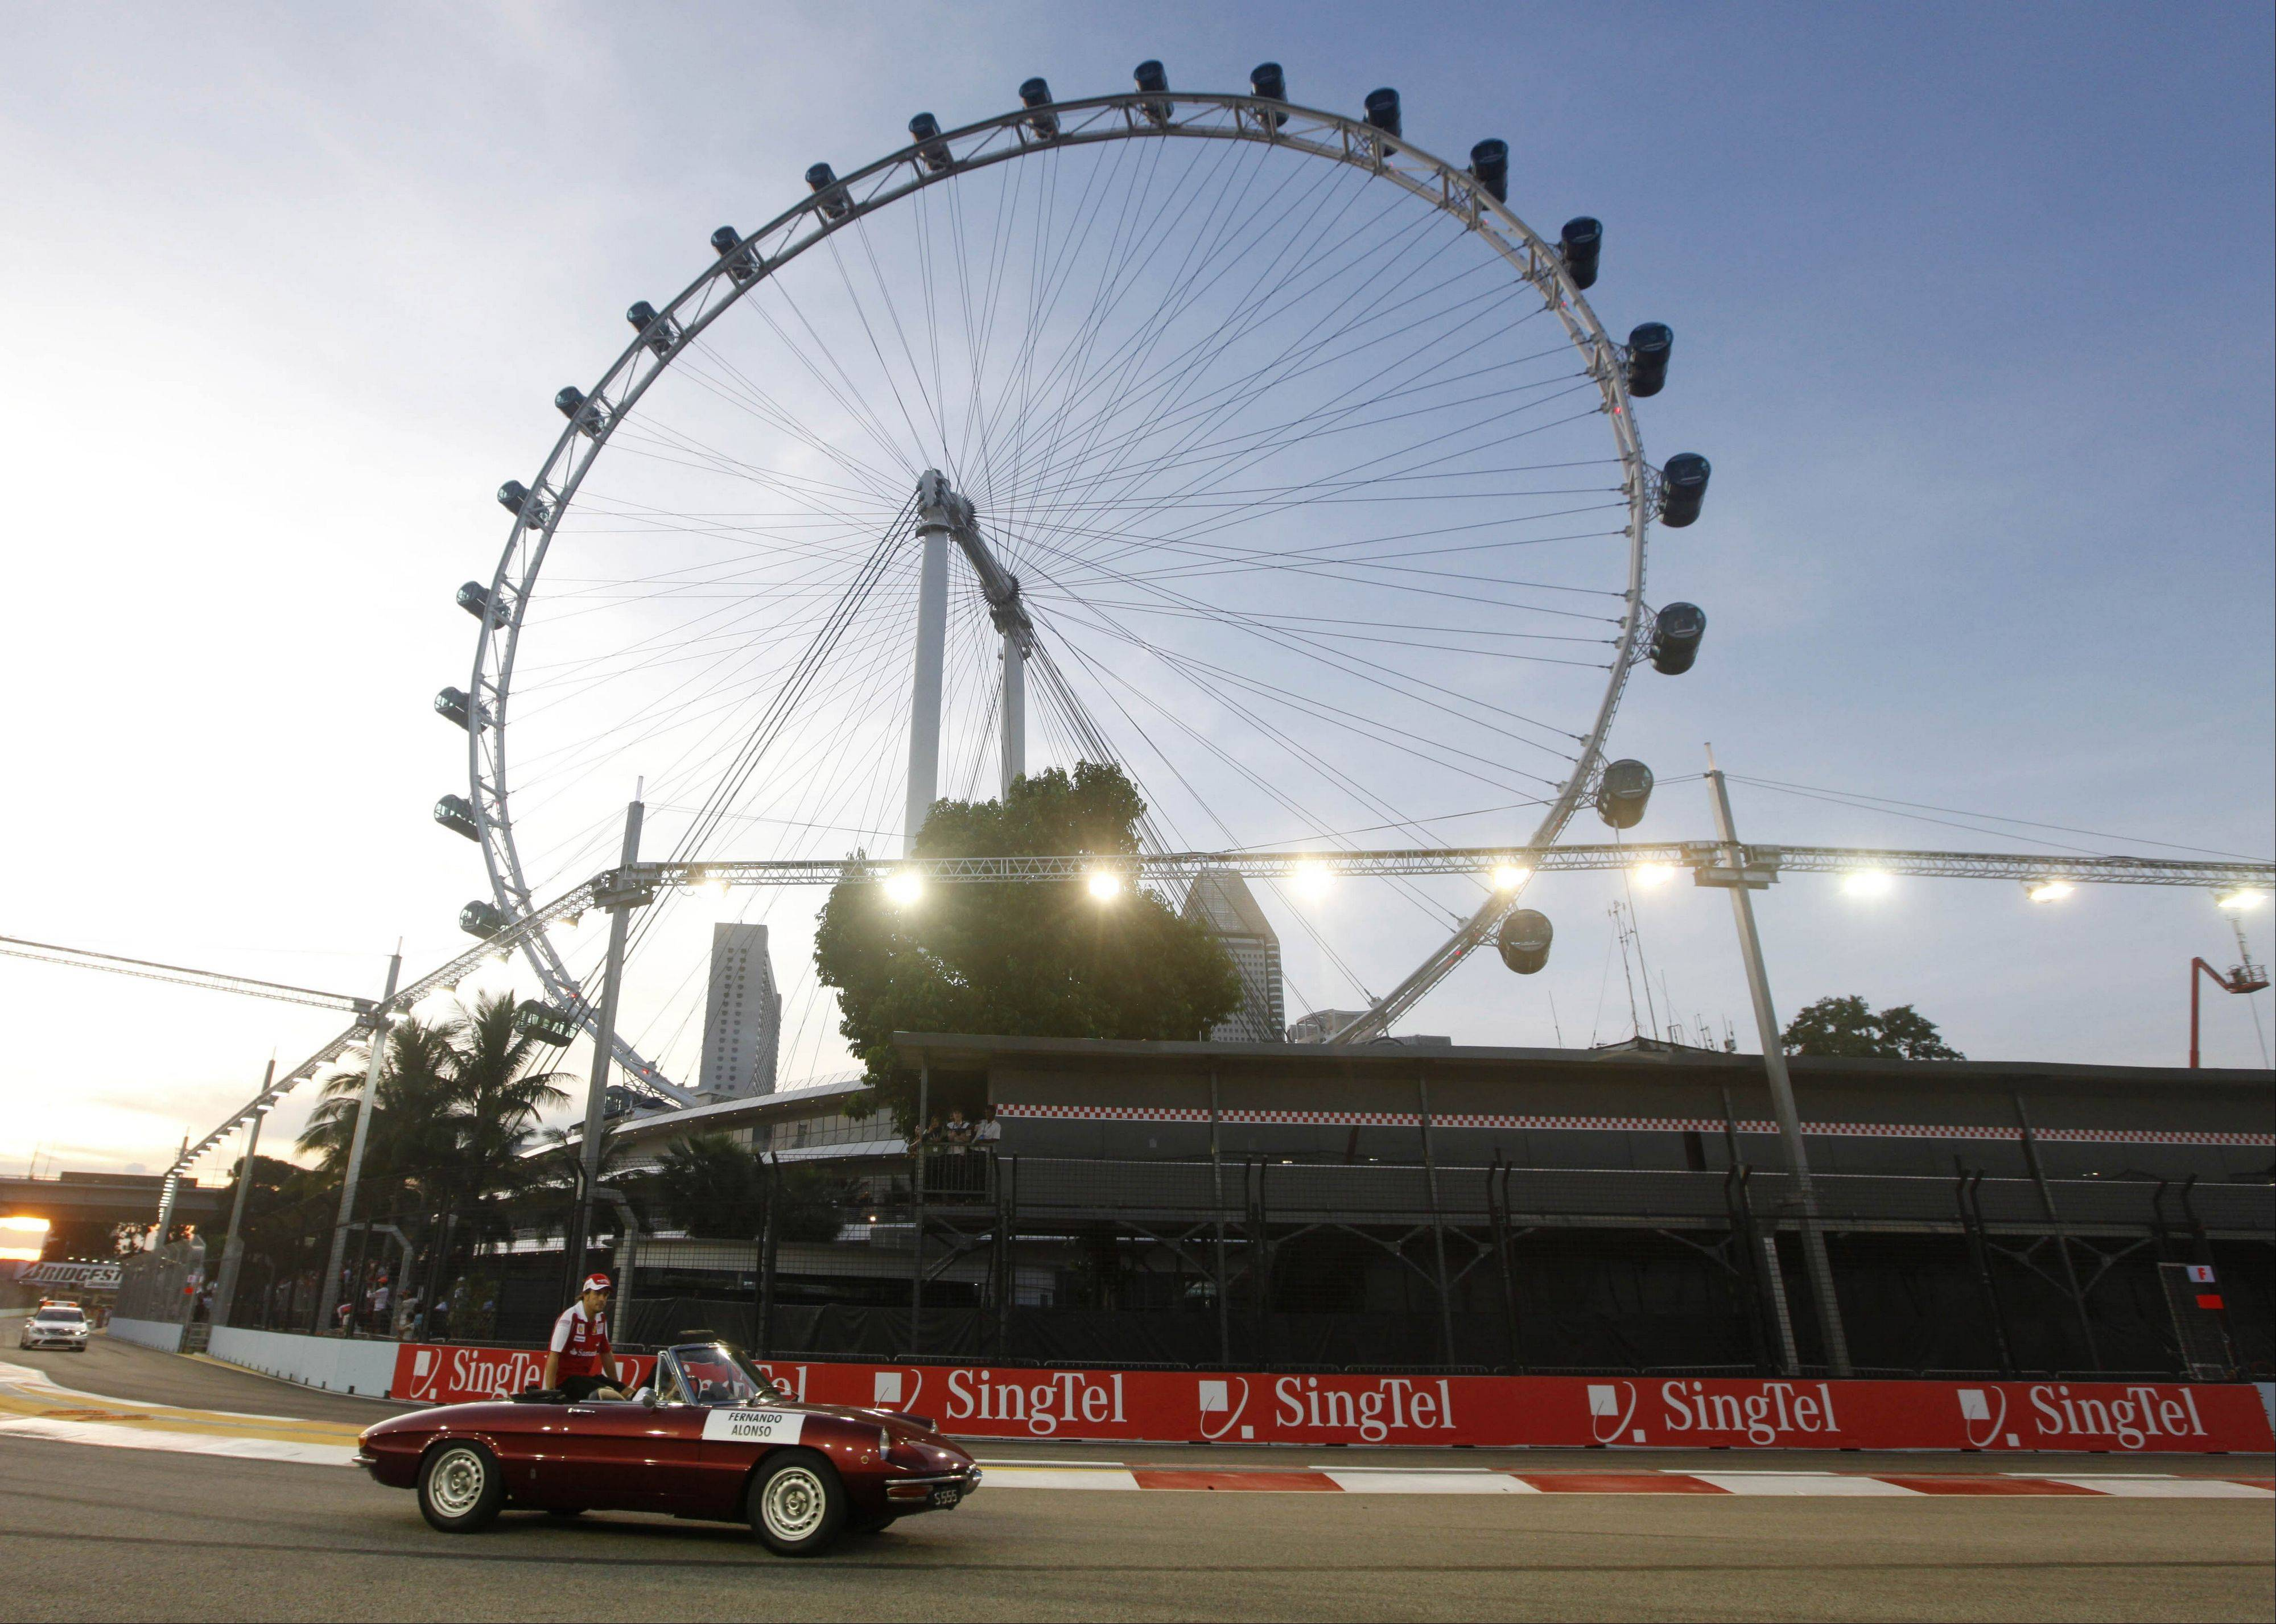 FILE -- In this Sept. 26, 2010 file photo, Ferrari Formula One driver Fernando Alonso of Spain is driven past the 541 foot tall ìSingapore Flyerî Ferris wheel during the driverí parade prior to the start of the Singapore Grand Prix on the Marina Bay City Circuit in Singapore. The proposed New York Wheel in the Staten Island borough of New York is planned to be 625 feet tall, and expected to open by the end of 2015.